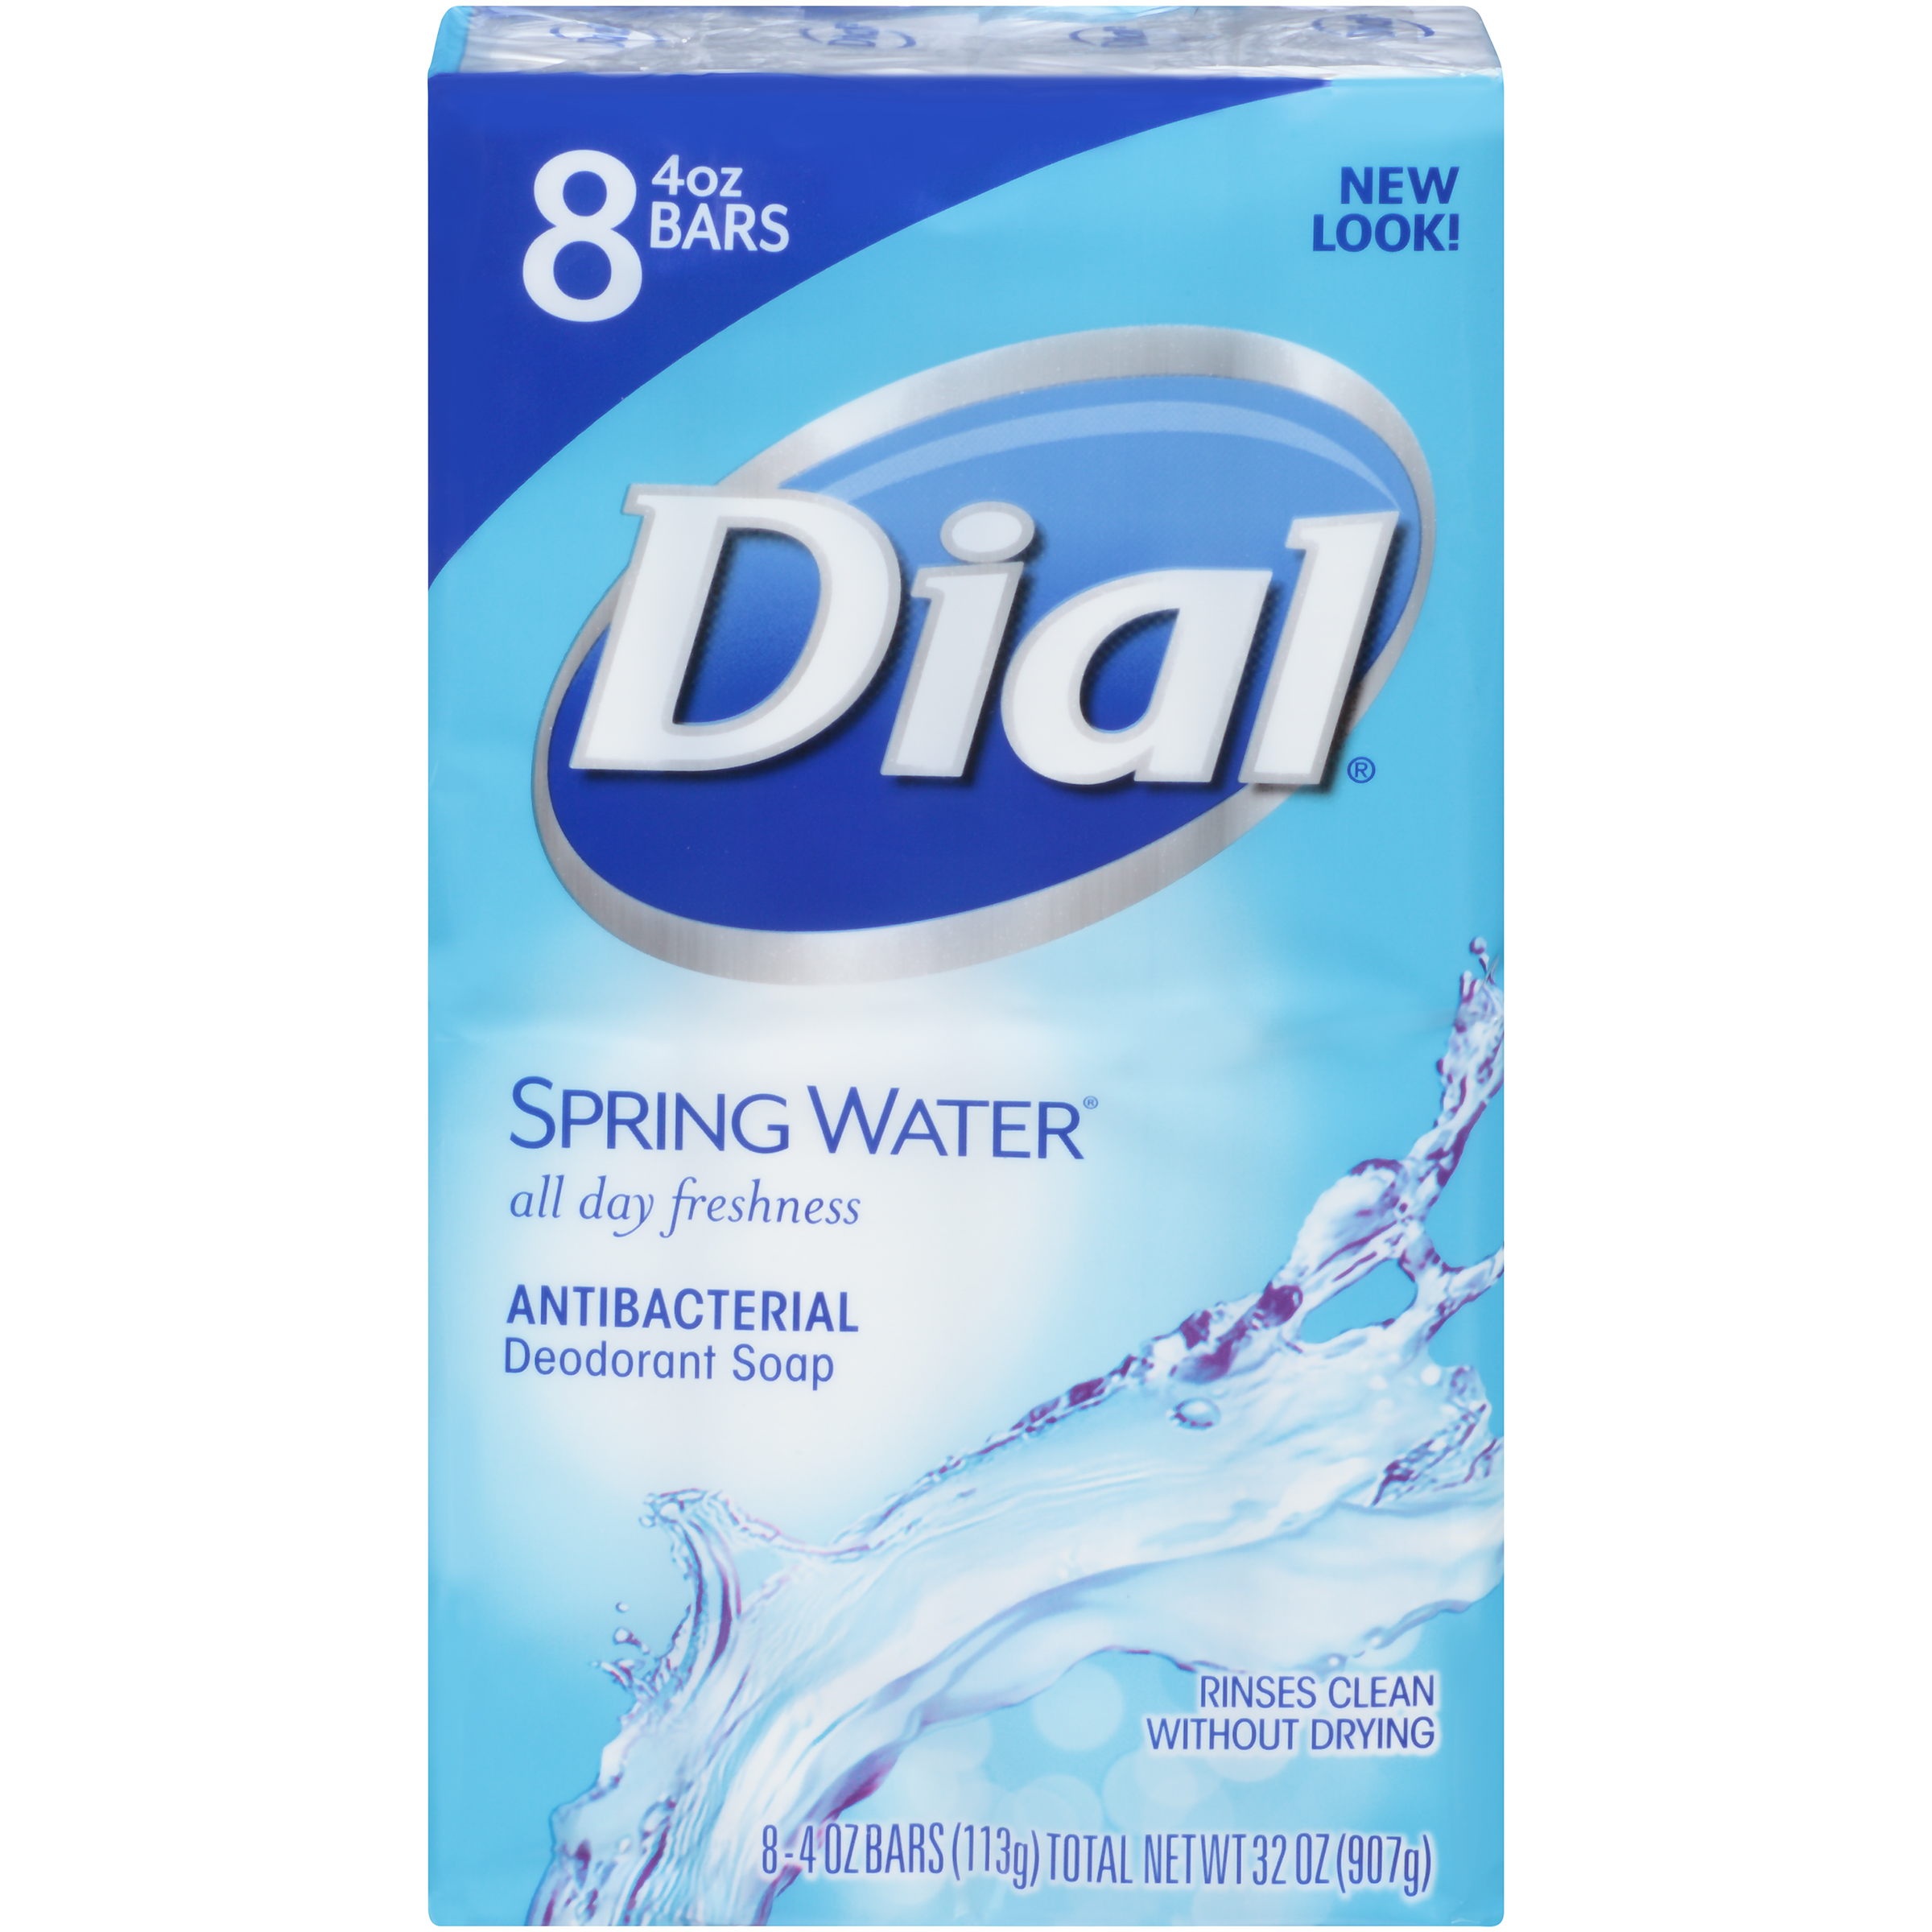 Dial Antibacterial Deodorant Bar Soap, Spring Water, 4 Ounce Bars, 8 Count